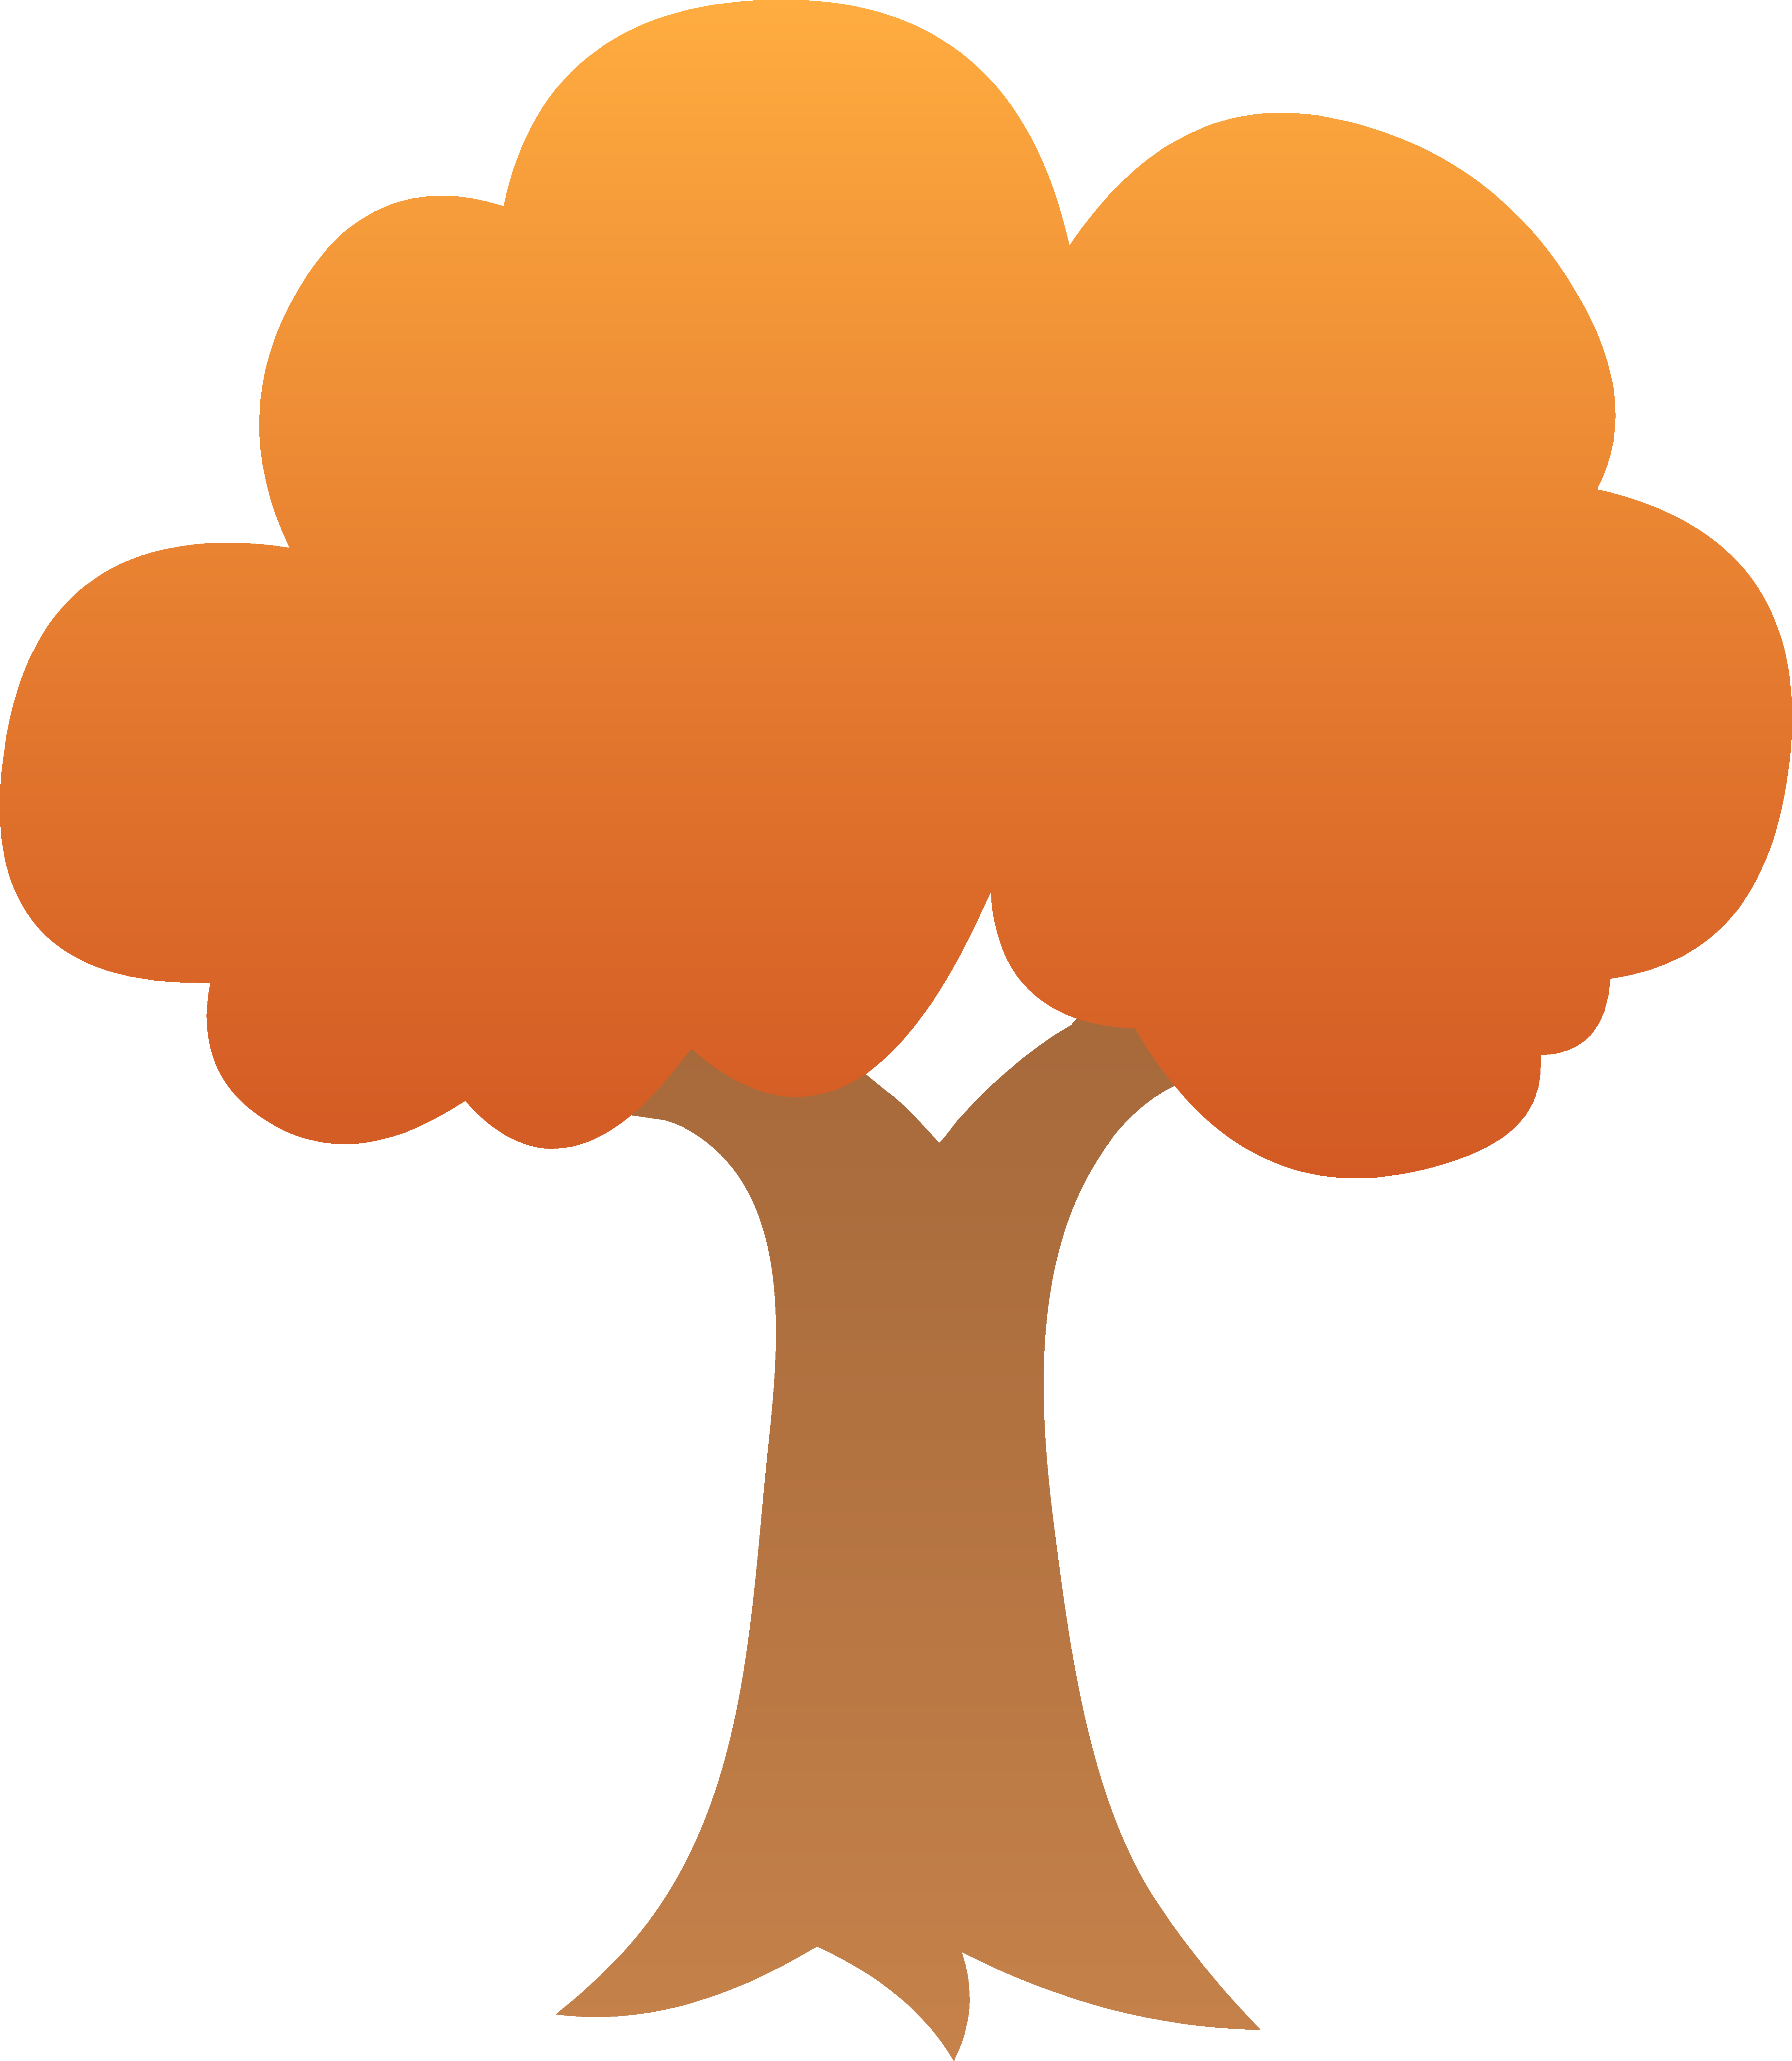 Fall Leaves Tree Clipart | Clipart library - Free Clipart Images